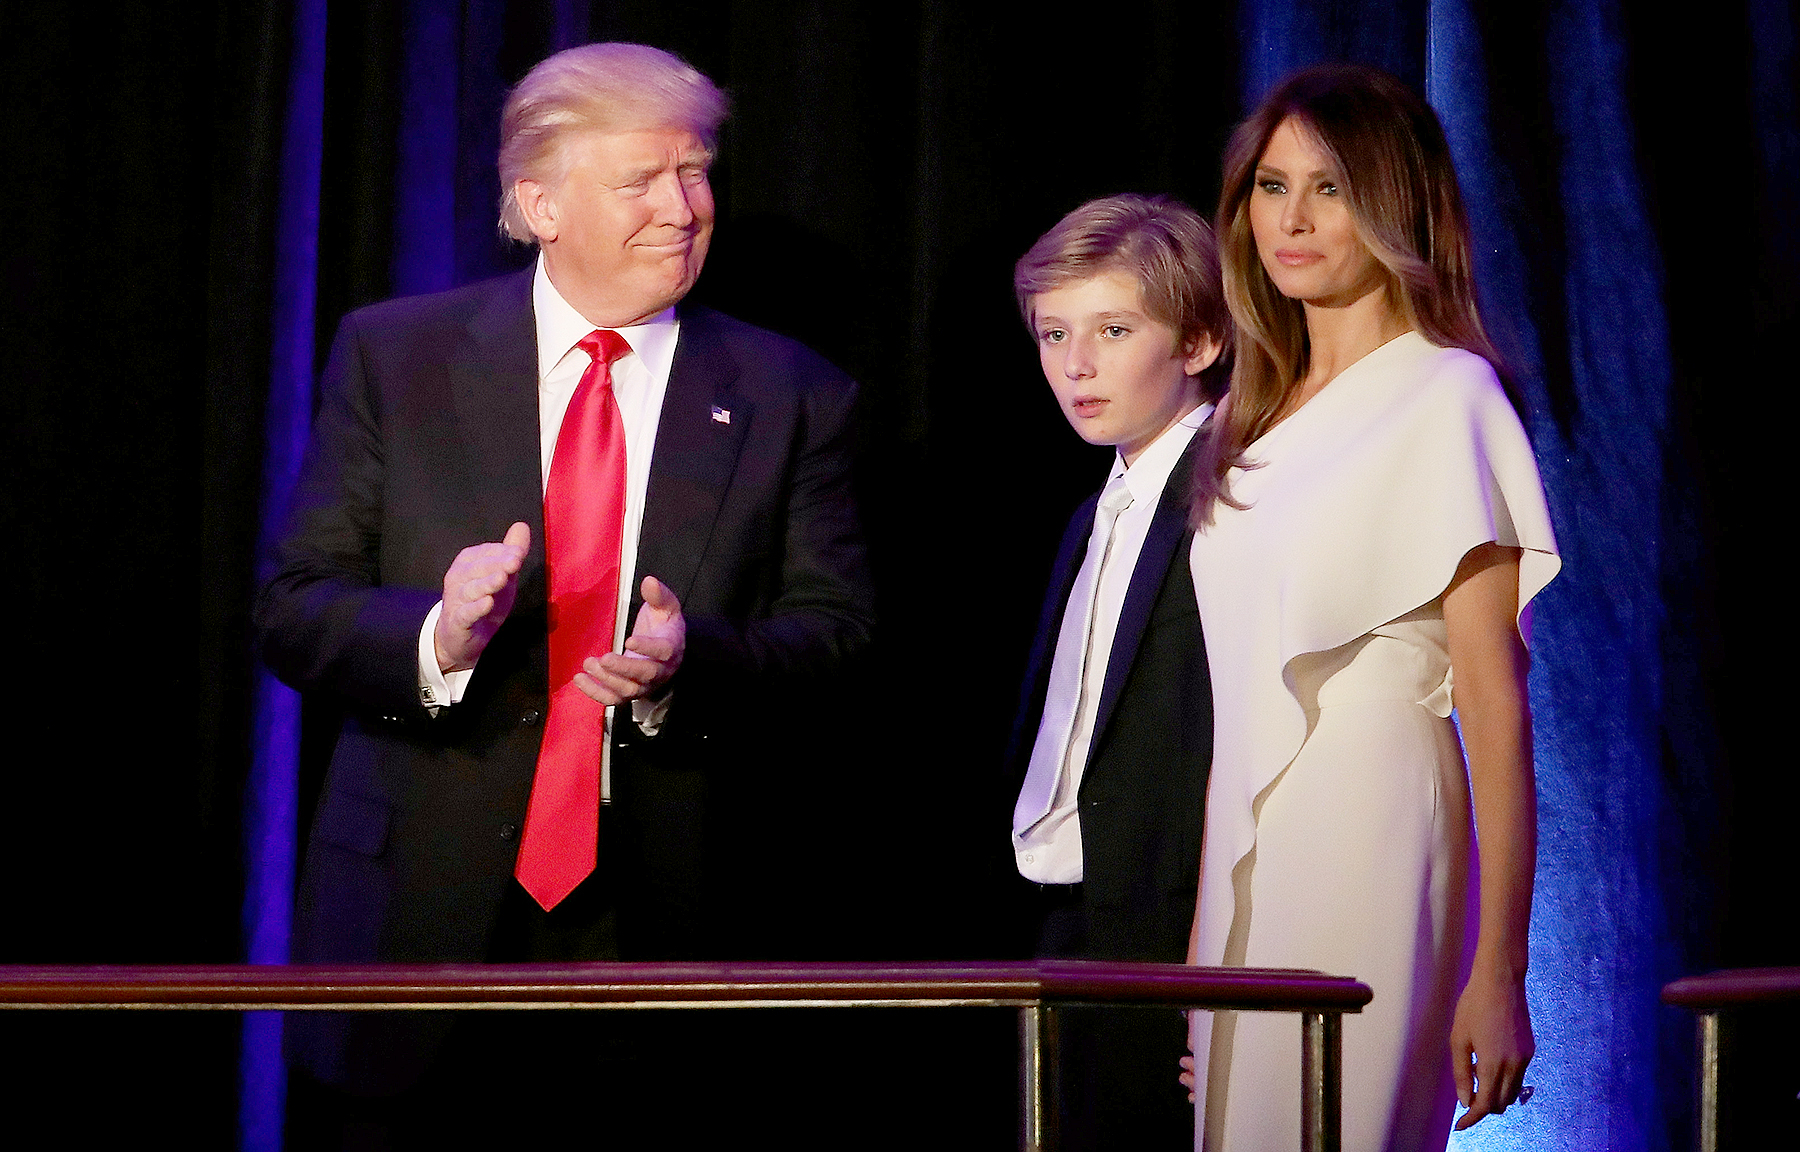 Republican president-elect Donald Trump walks on stage with his son Barron Trump and wife Melania Trump during his election night event at the New York Hilton Midtown in the early morning hours of Nov. 9, 2016, in New York City.